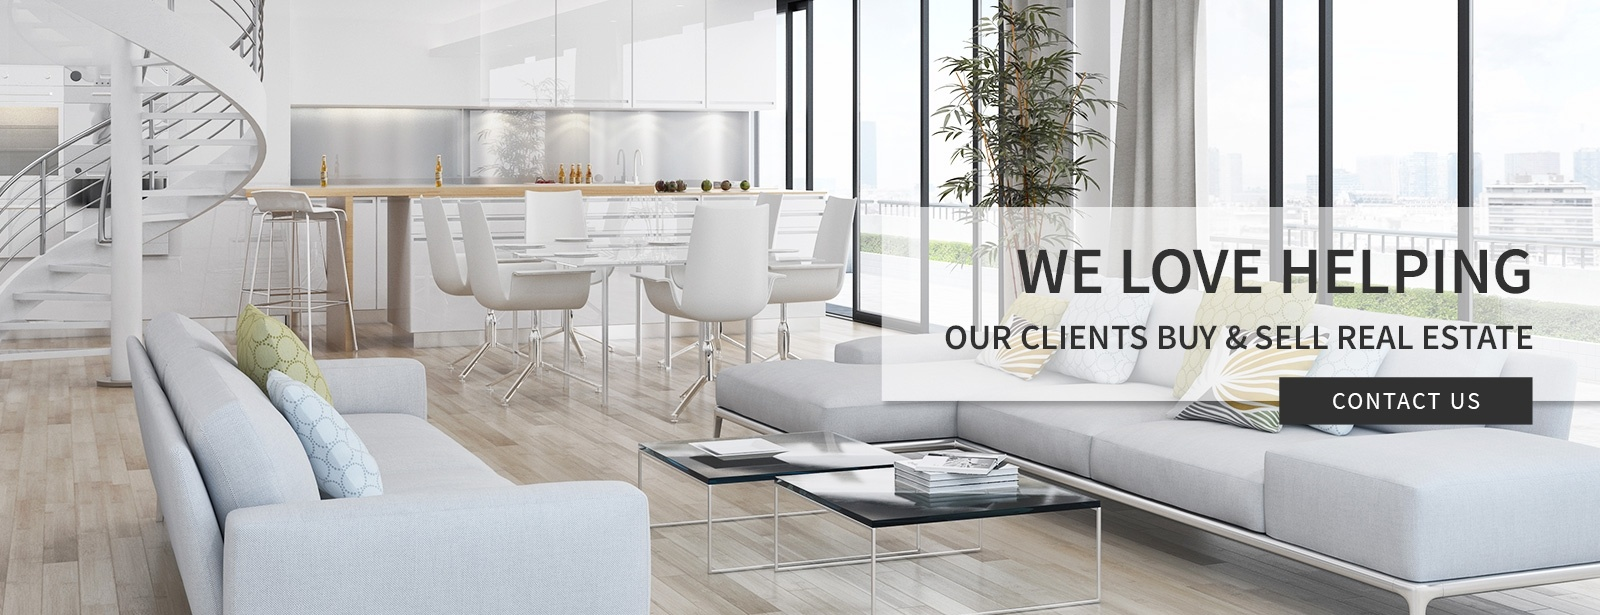 Home Interior Sales Representatives home interior sales representatives of worthy home interior sales representatives home interior design best First Time Home Buyer Ottawa